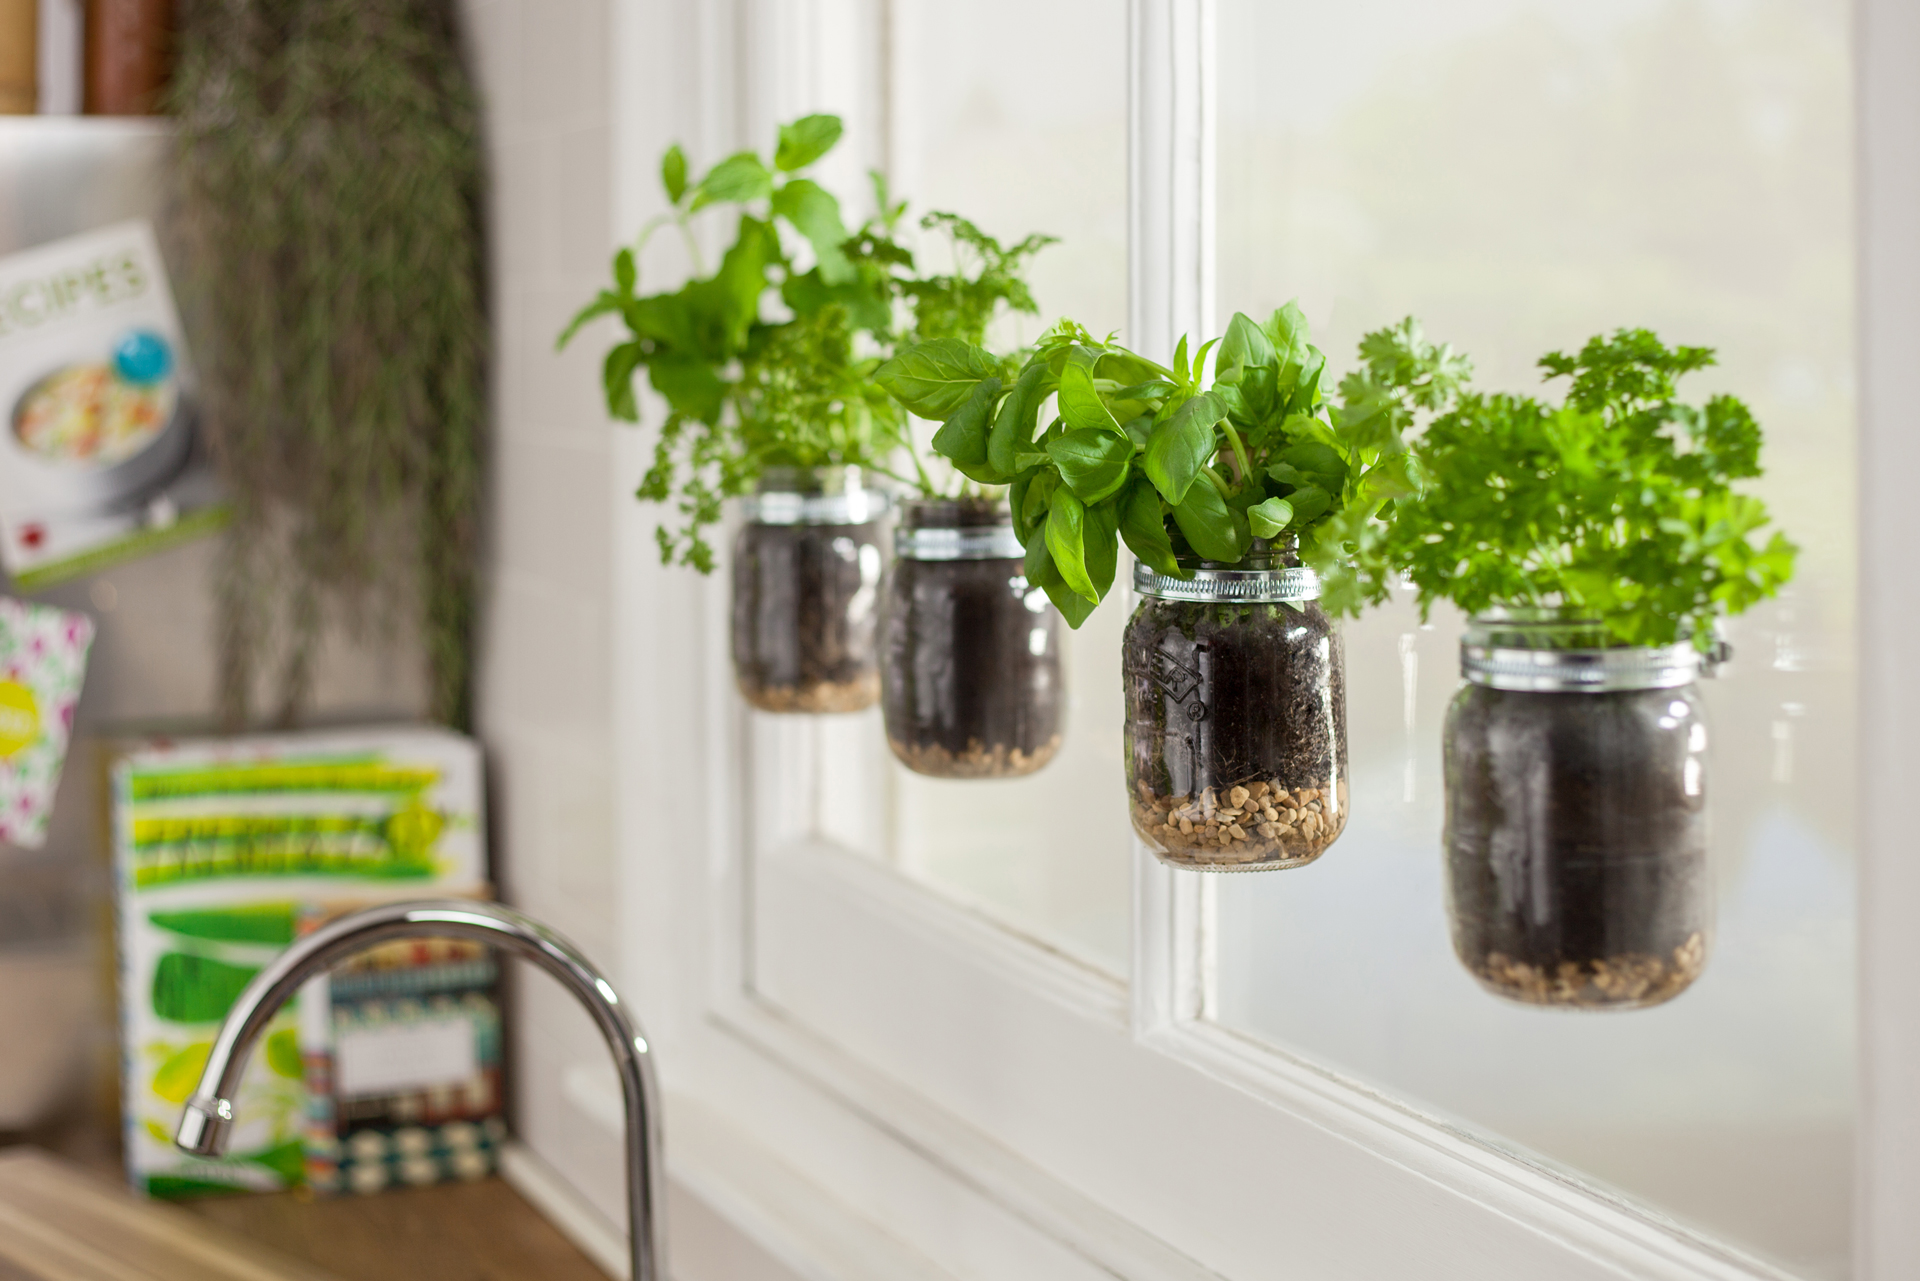 How to make a window herb garden - SugruHow to make a window herb garden - 웹